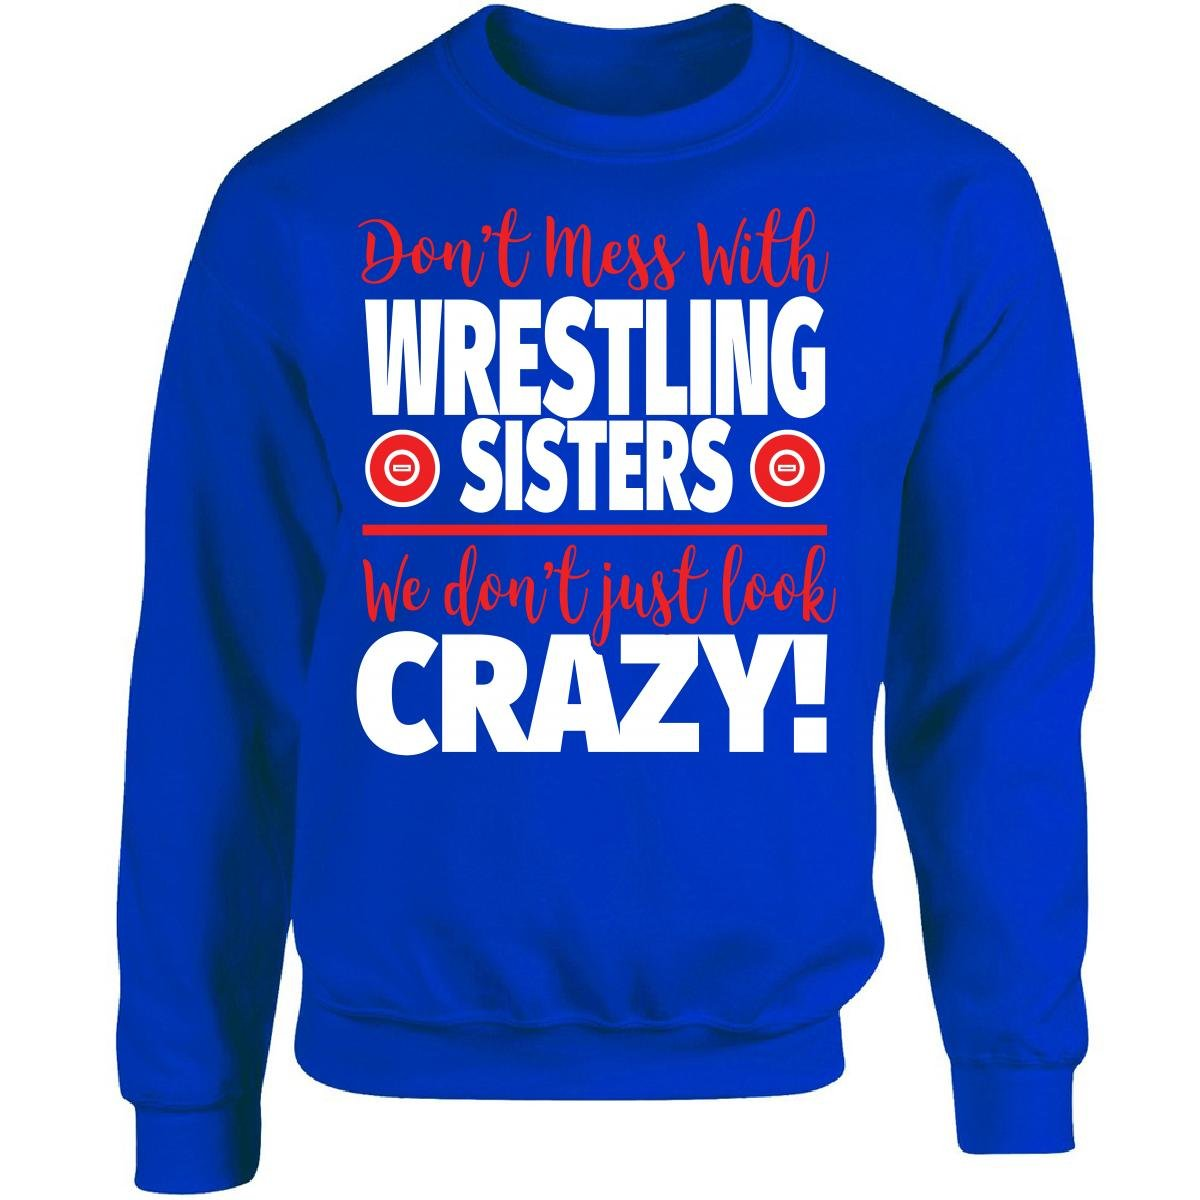 Crazy Wrestling Family - Don't Mess With Wrestling Sisters - Adult Sweatshirt by Eternally Gifted